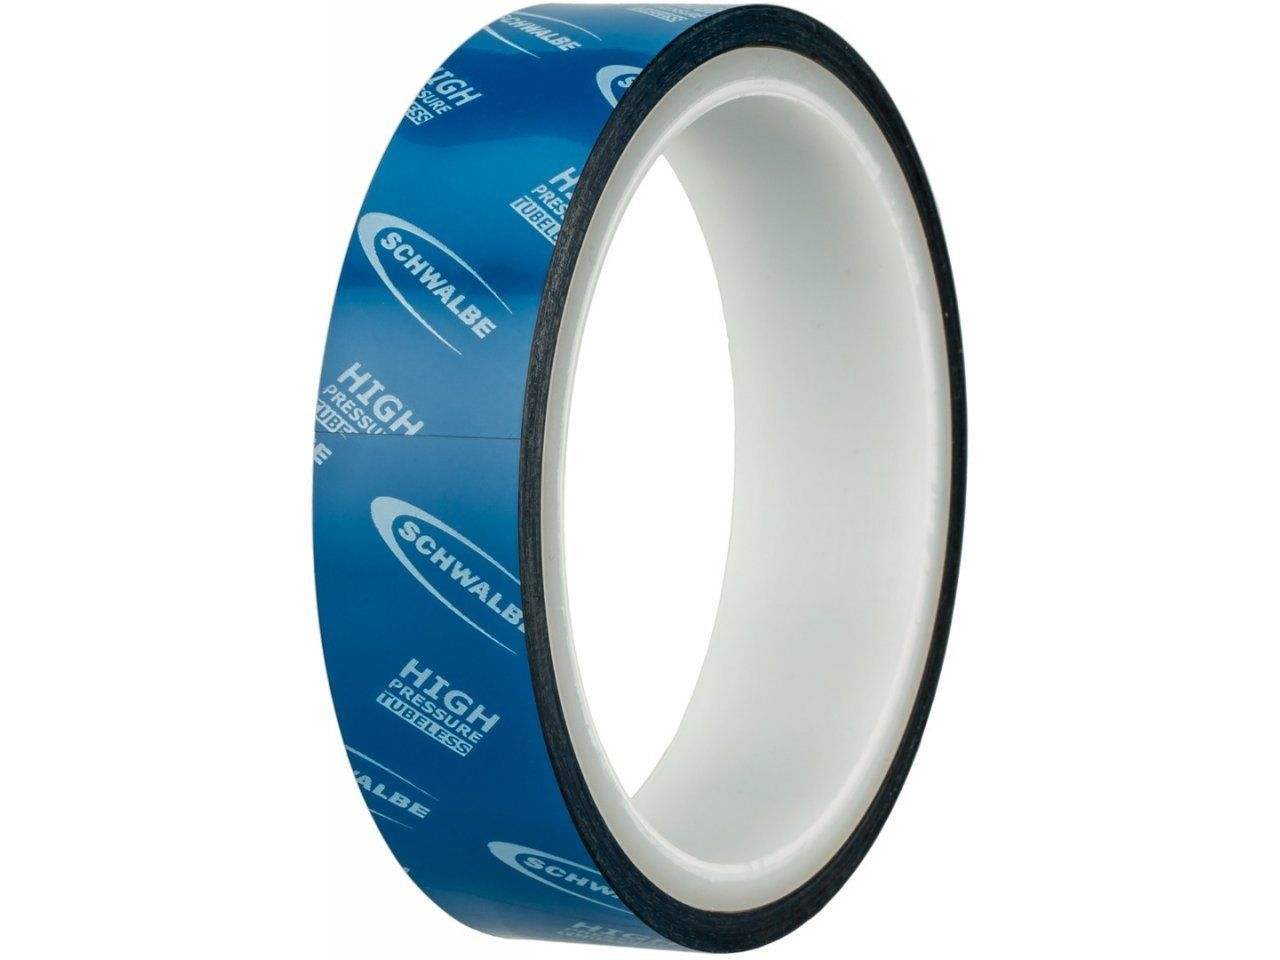 Schwalbe-Tubeless-Rim-Tape-41400-0-1481260425.jpeg